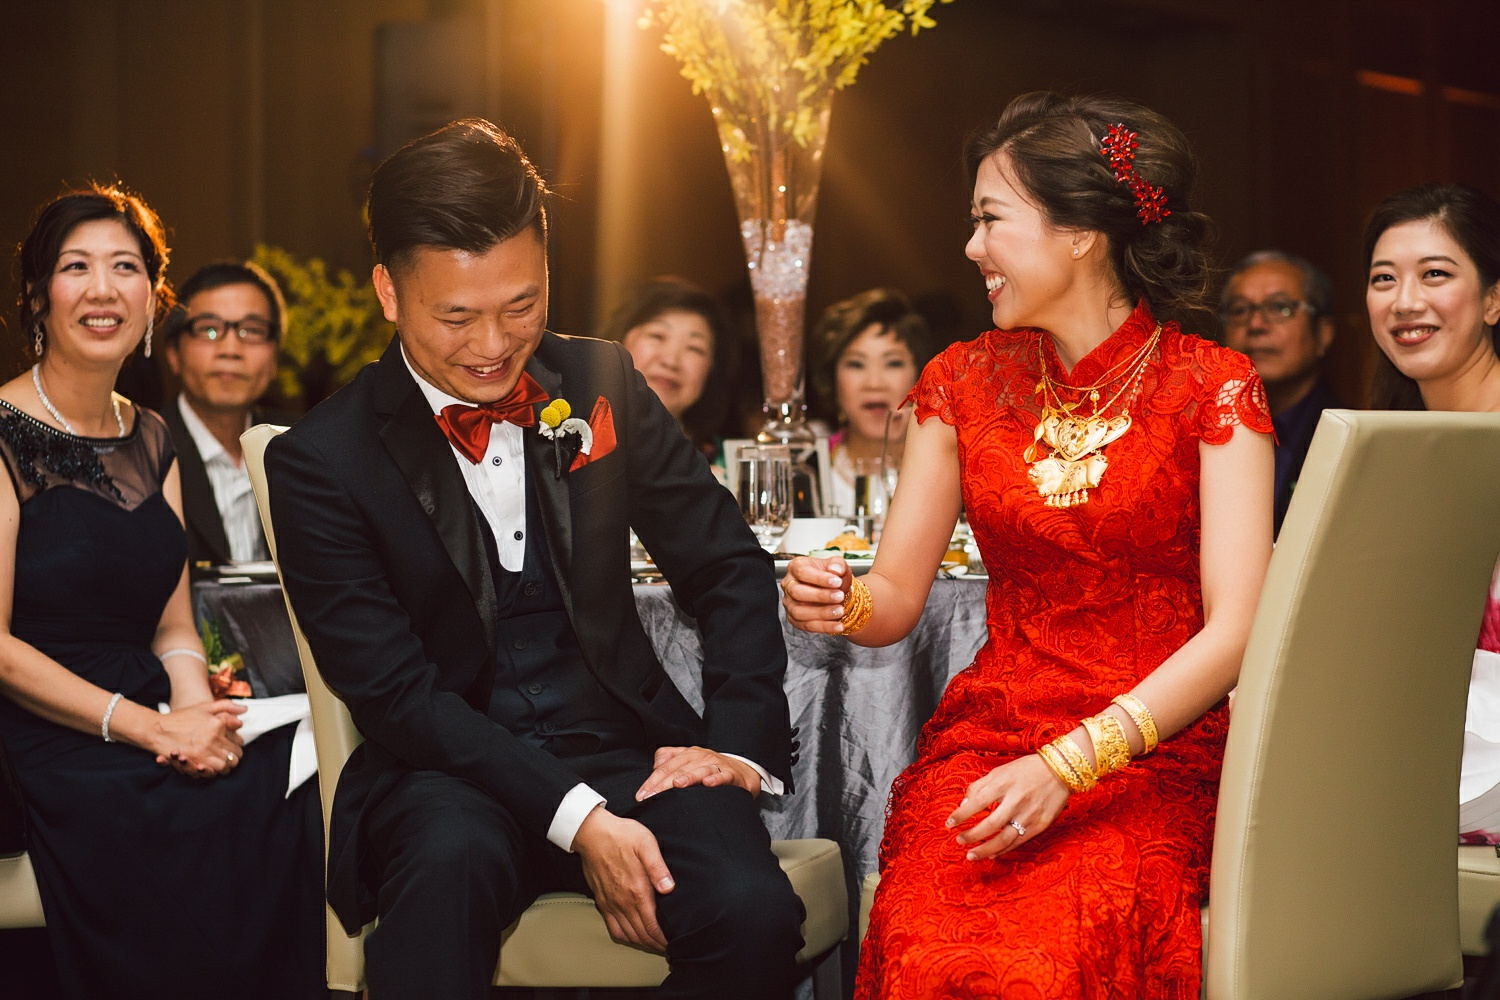 traditional chinese wedding red dress